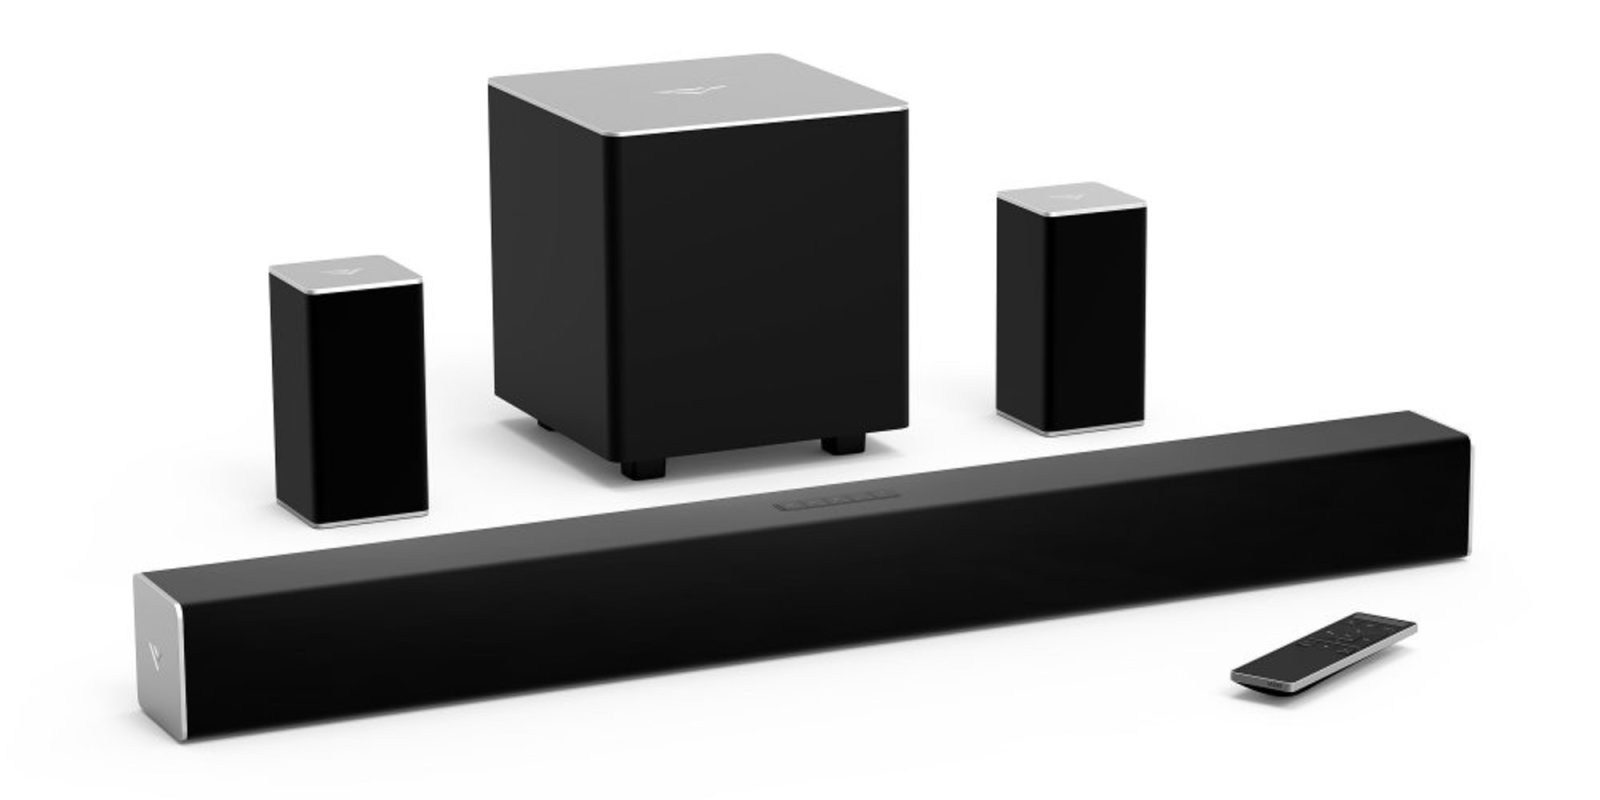 Walmart Drops The VIZIO 32 Inch 51 Ch Soundbar To New Low At 139 More From 29